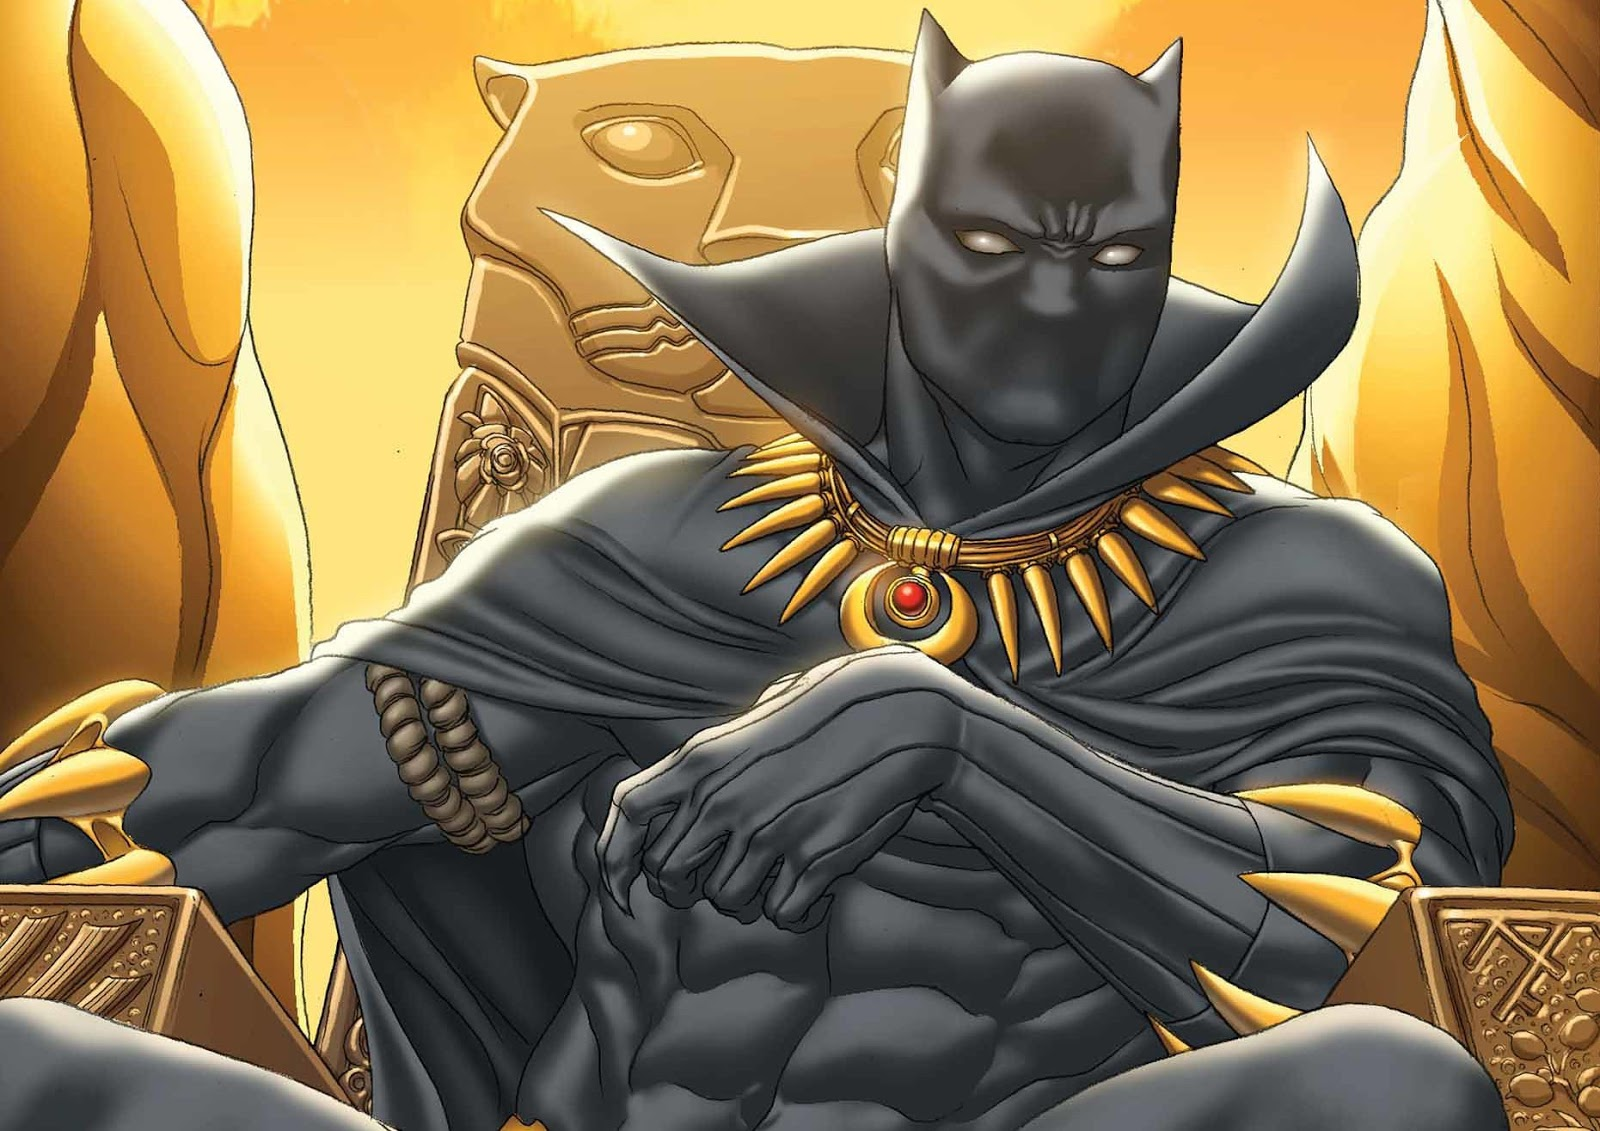 Black panther cartoon on bet us open golf tipsters betting